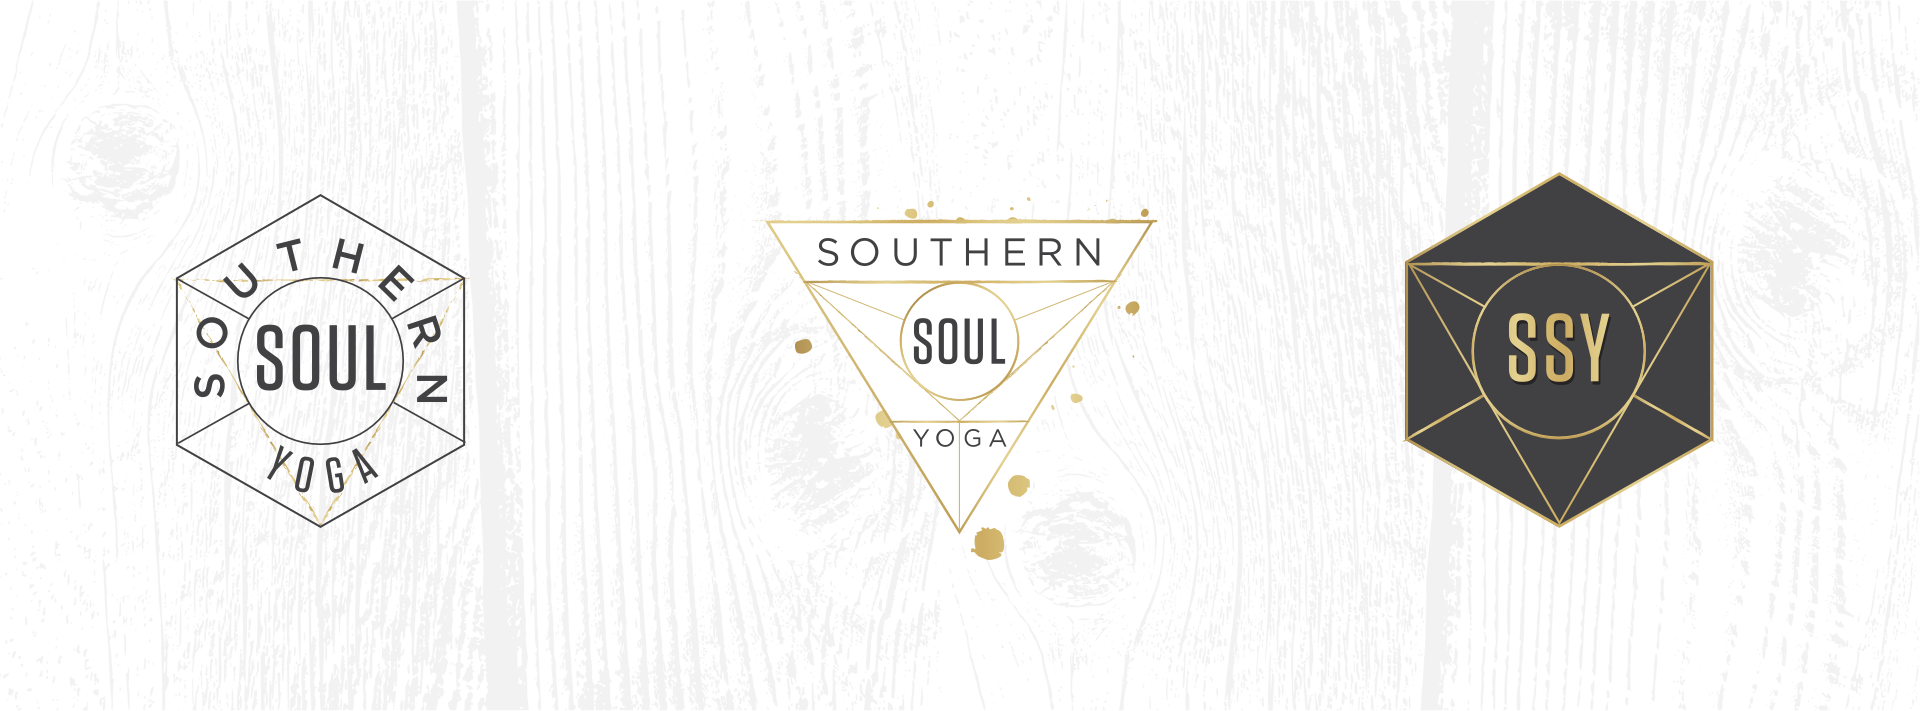 Southern Soul Yoga Mark Variations